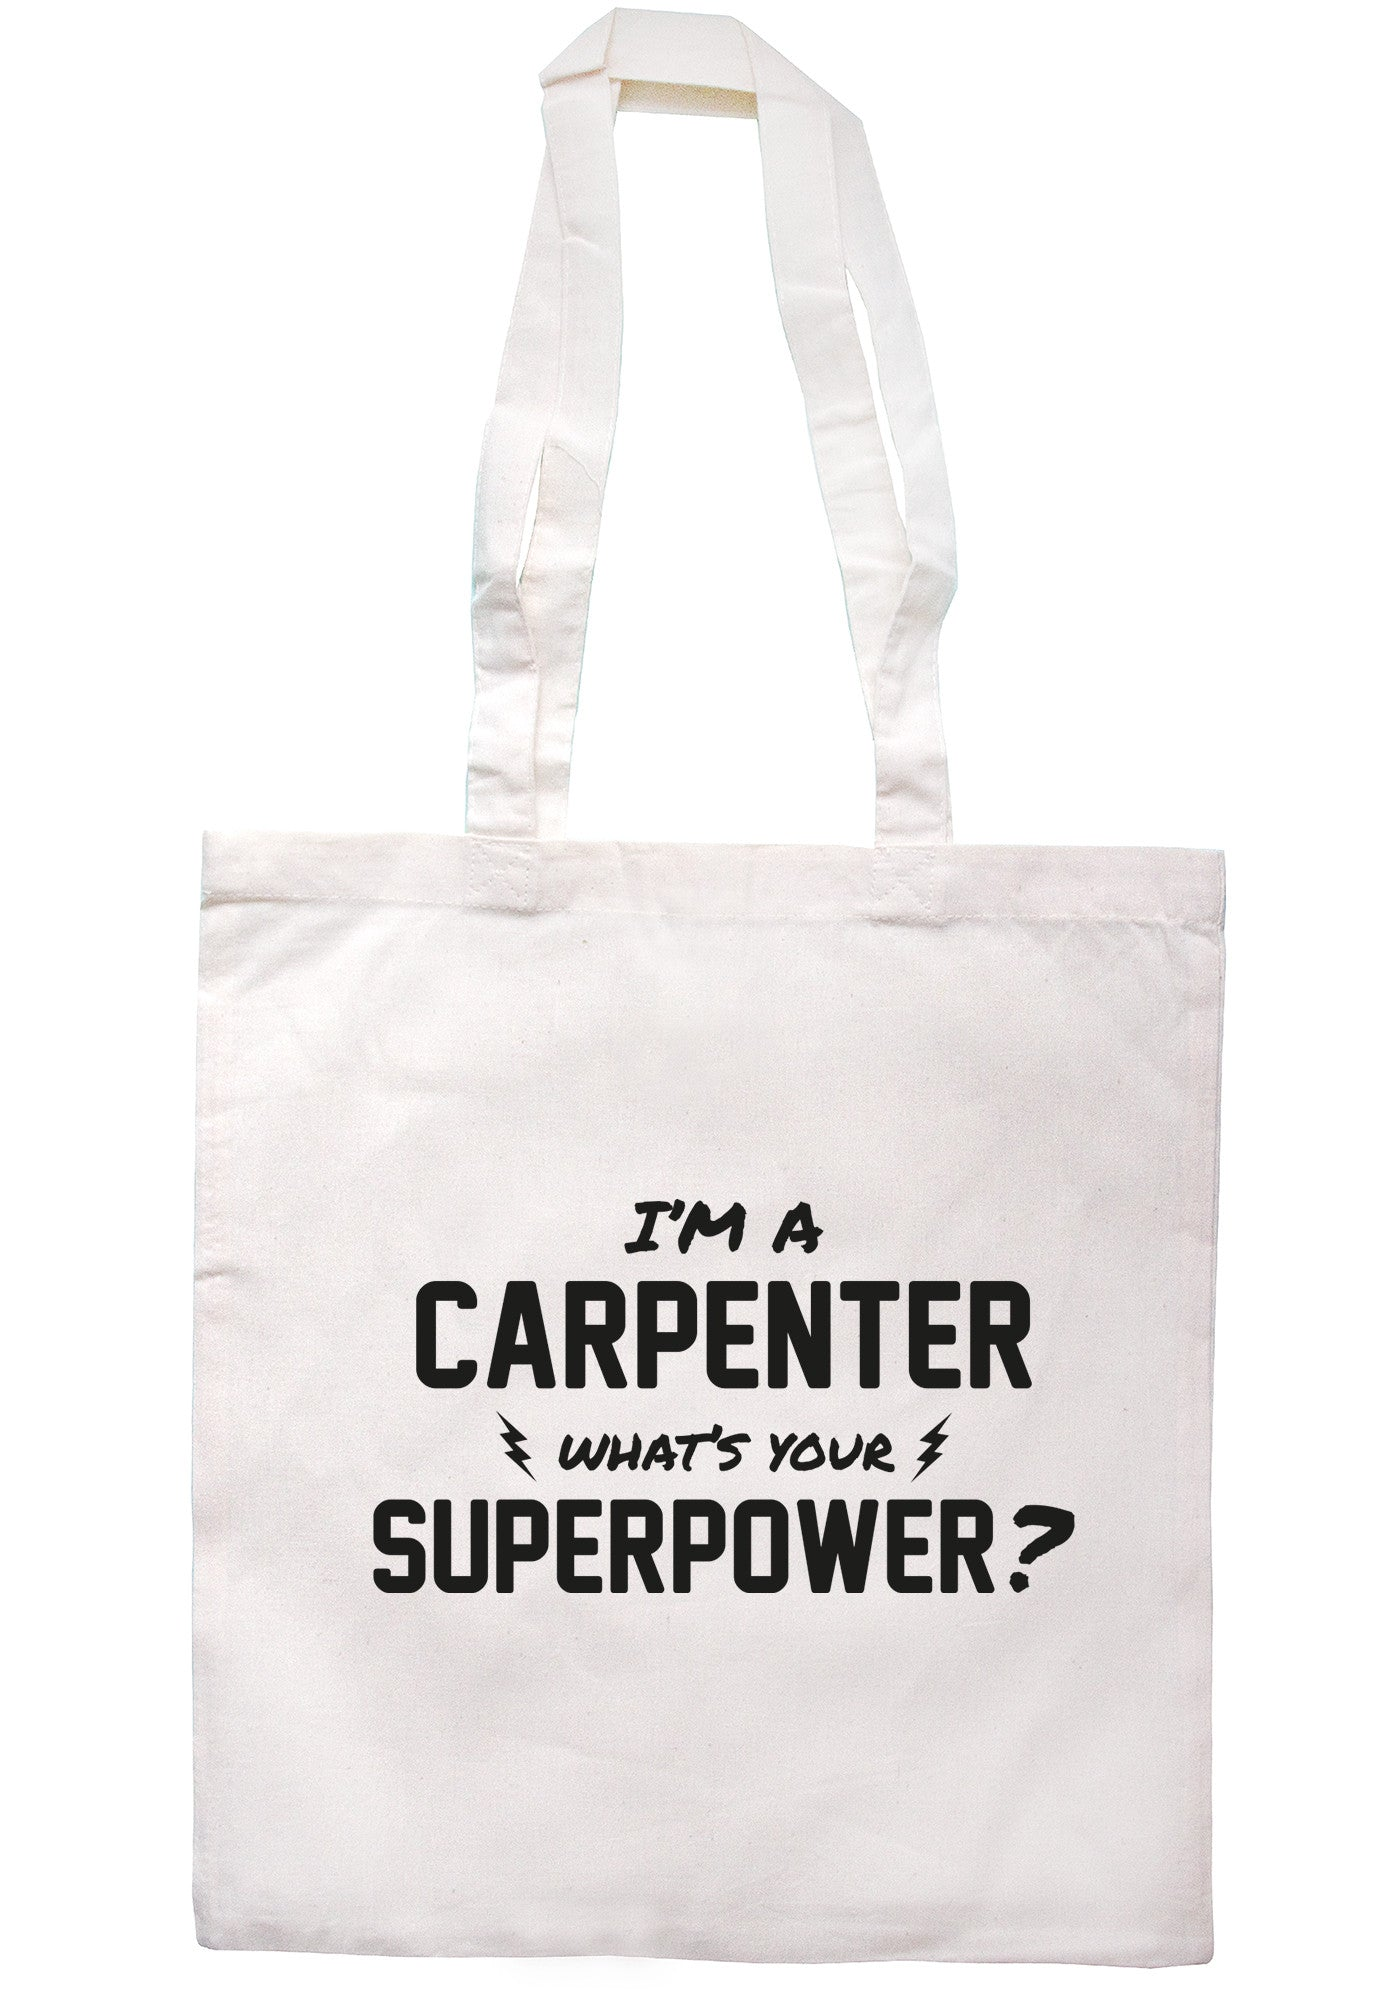 I'm A Carpenter What's Your Superpower? Tote Bag TB0508 - Illustrated Identity Ltd.